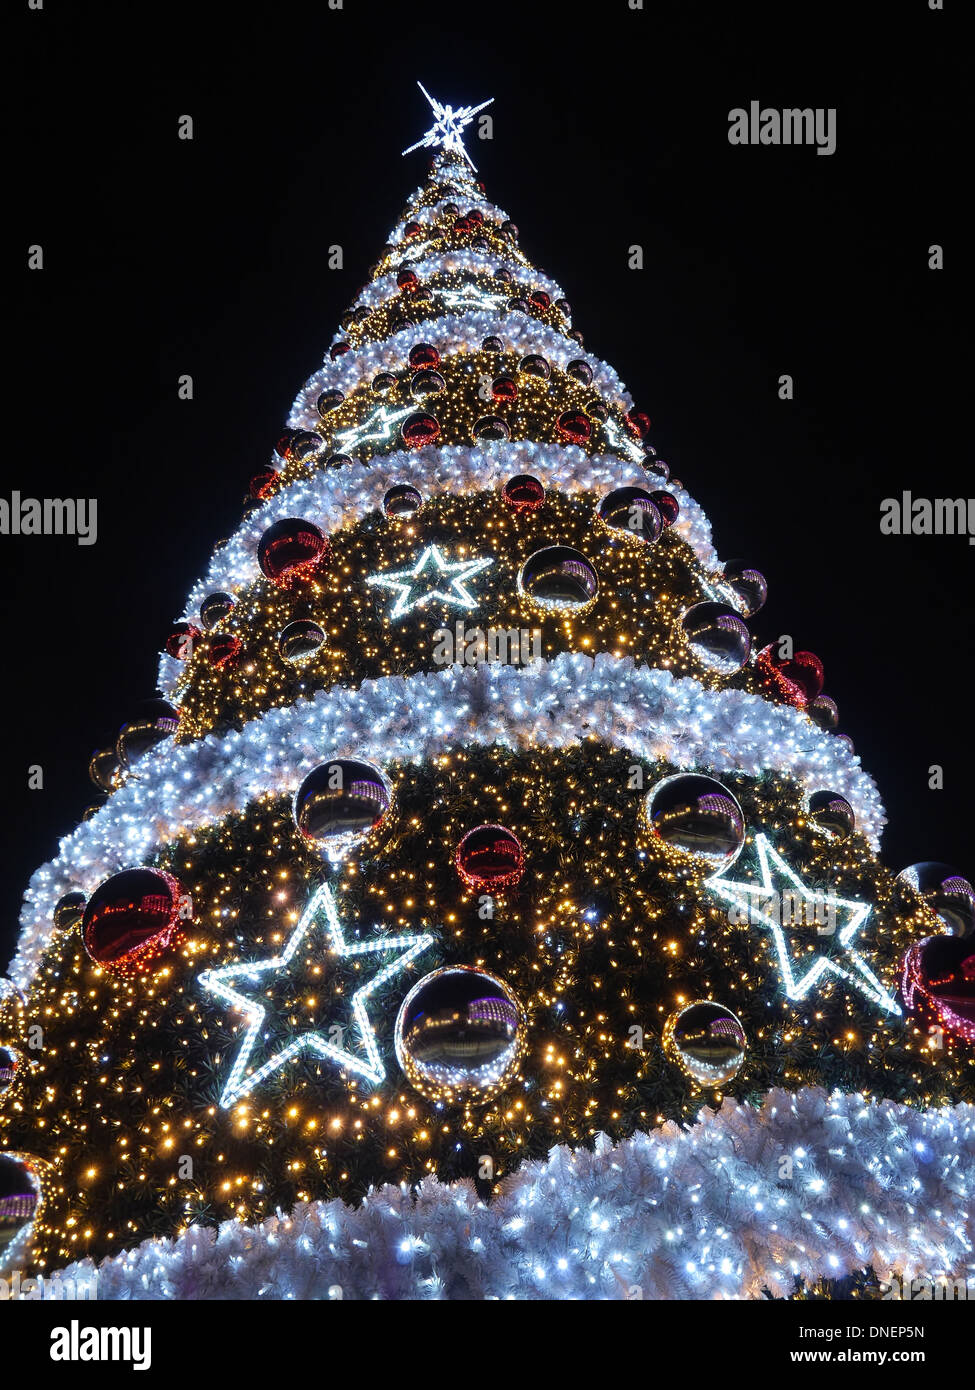 giant outdoors christmas tree illuminated at the evening night against dark blue sky stock image - Giant Outdoor Christmas Decorations